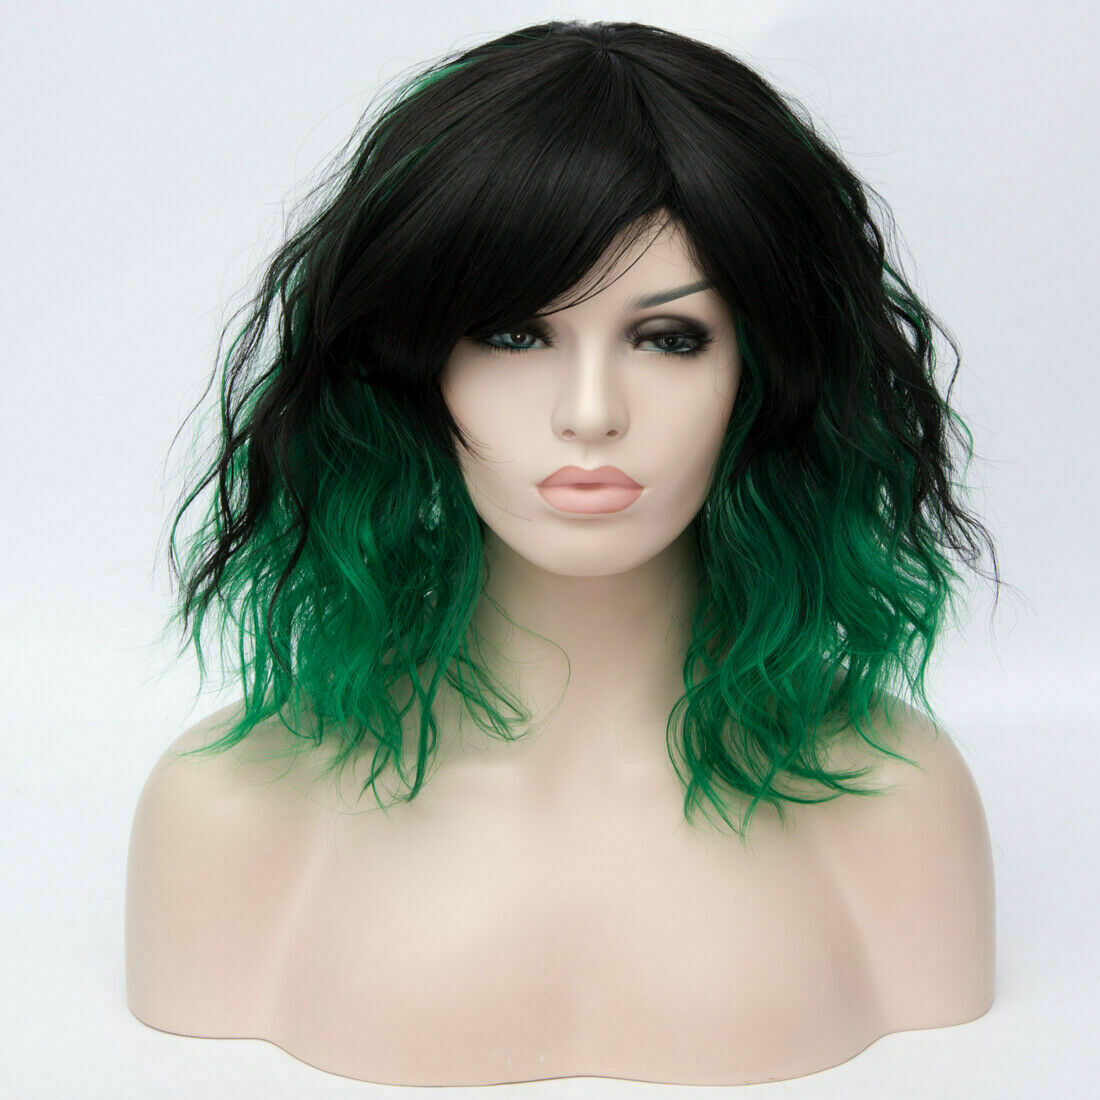 Lolita-Women-039-s-Short-Curly-Anime-Synthetic-Hair-Heat-Resistant-Cosplay-Party-Wig miniature 93